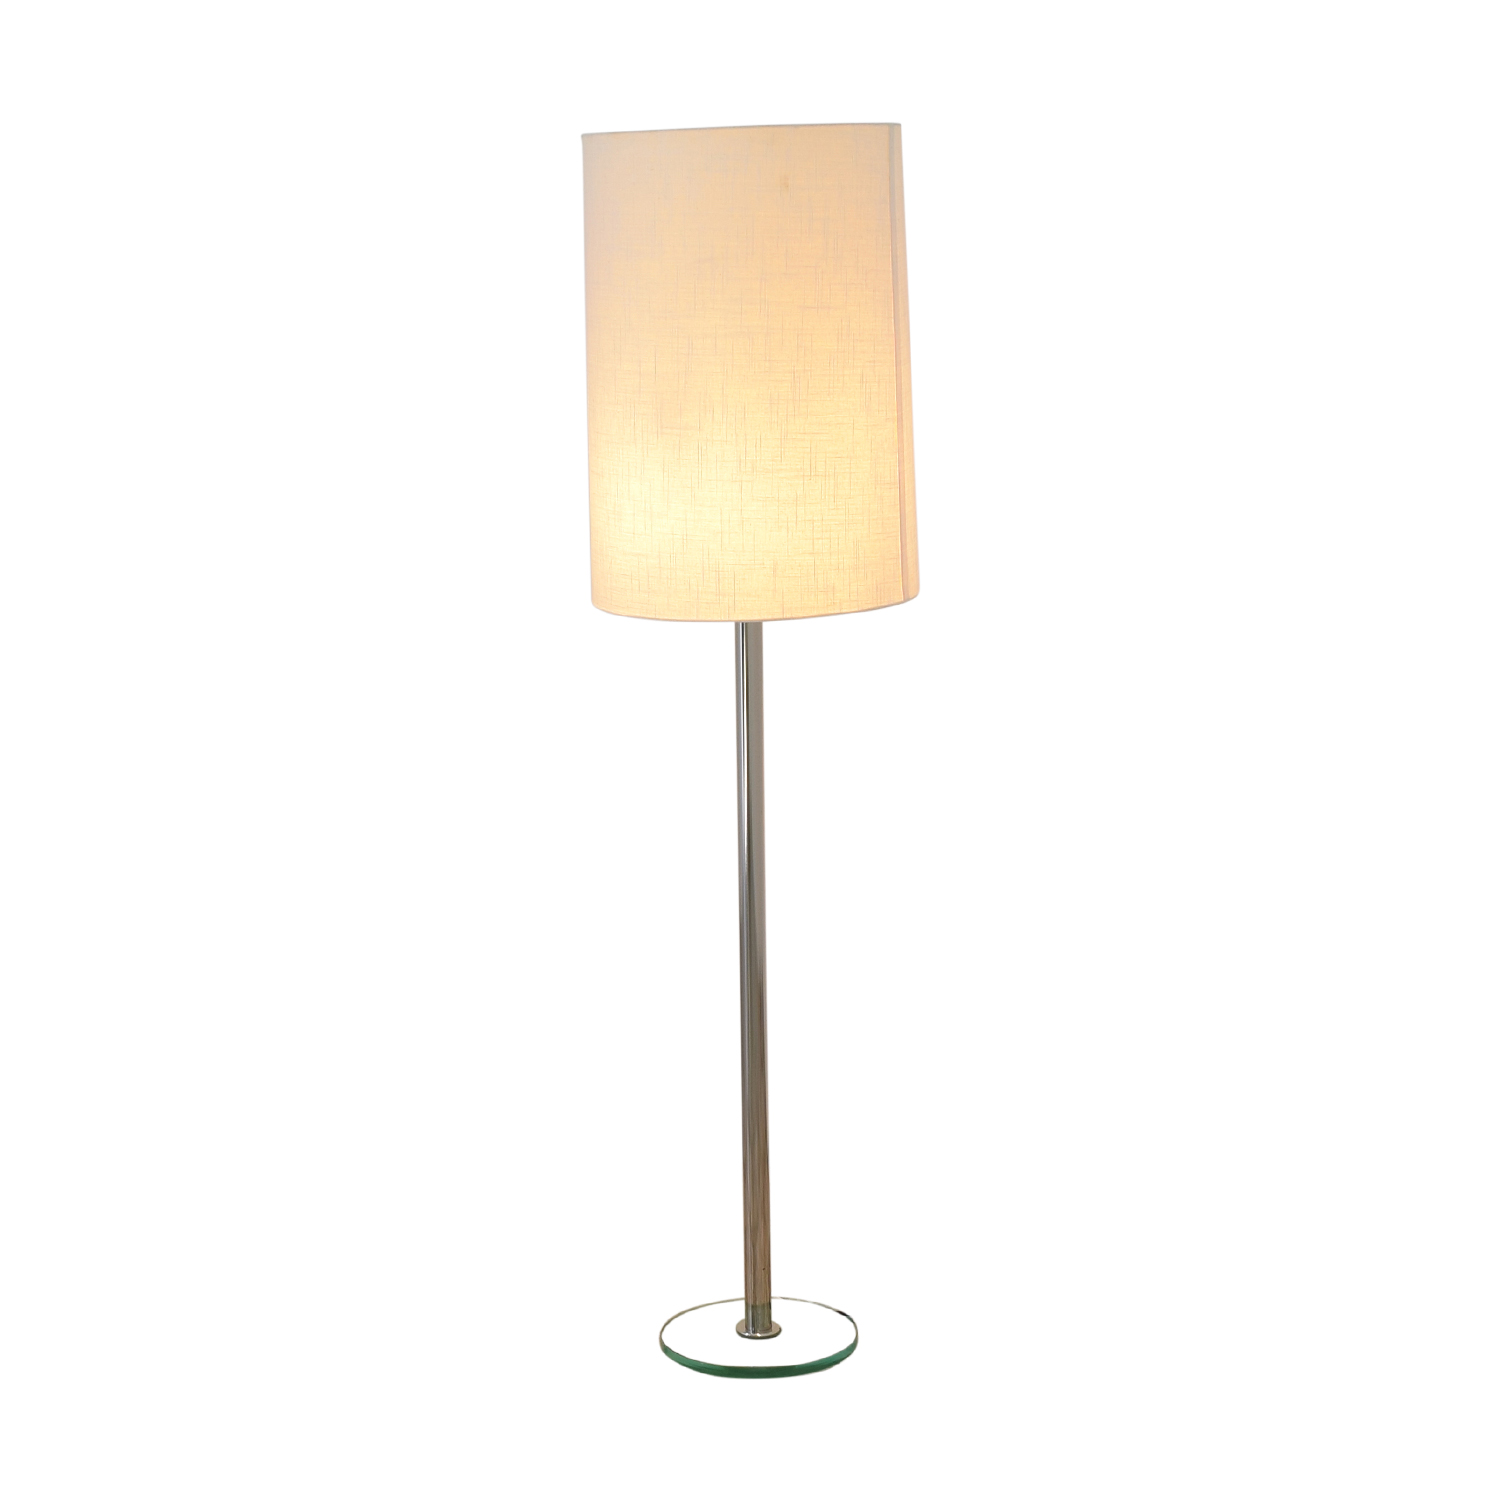 Crate & Barrel Crate & Barrel Claire Floor Lamp Decor